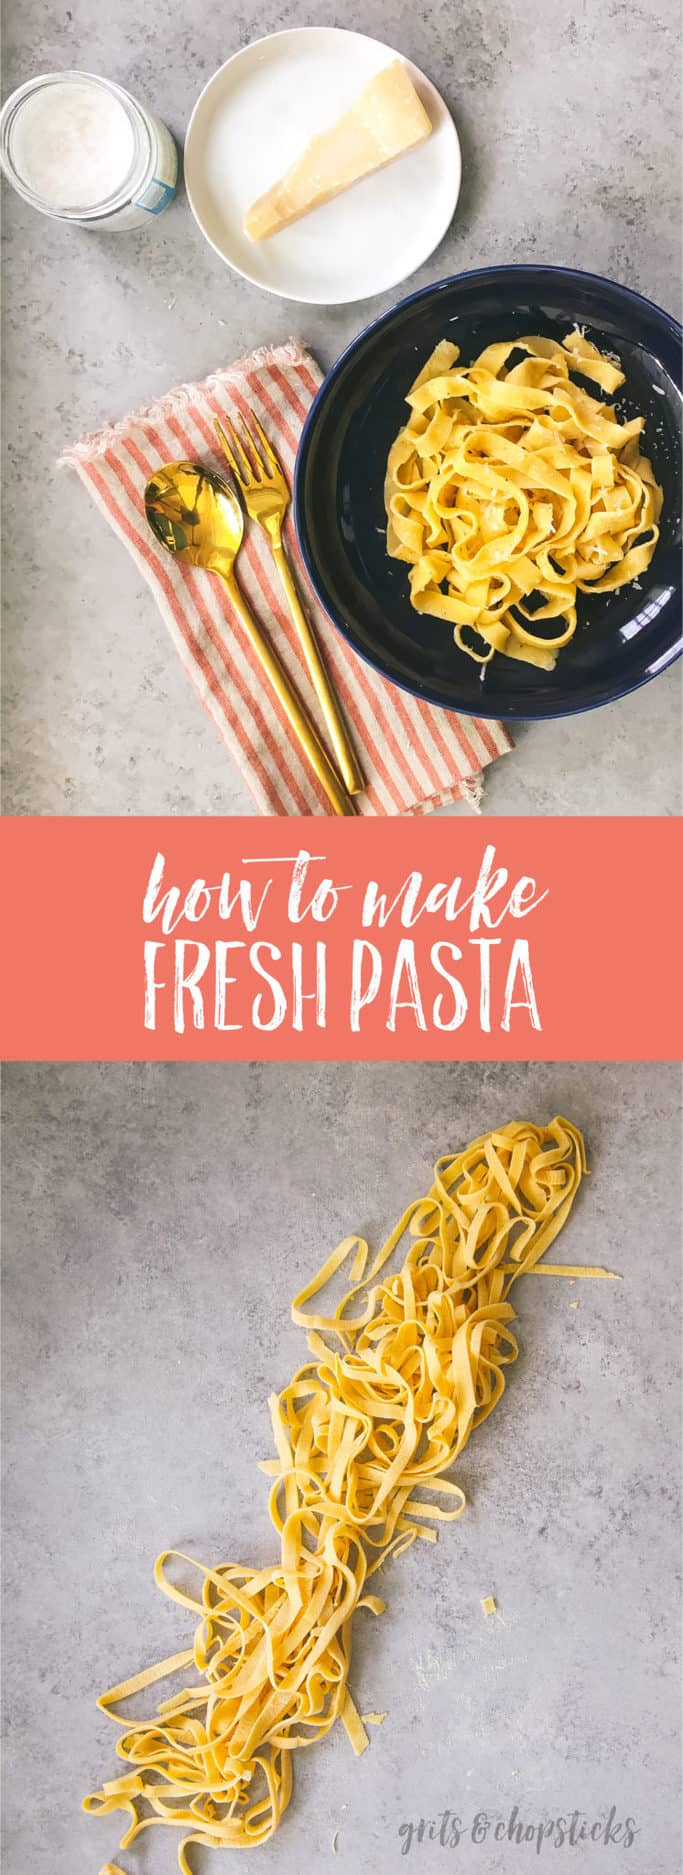 Making fresh pasta without a machine couldn't be easier -- click here for a video on how to do it!